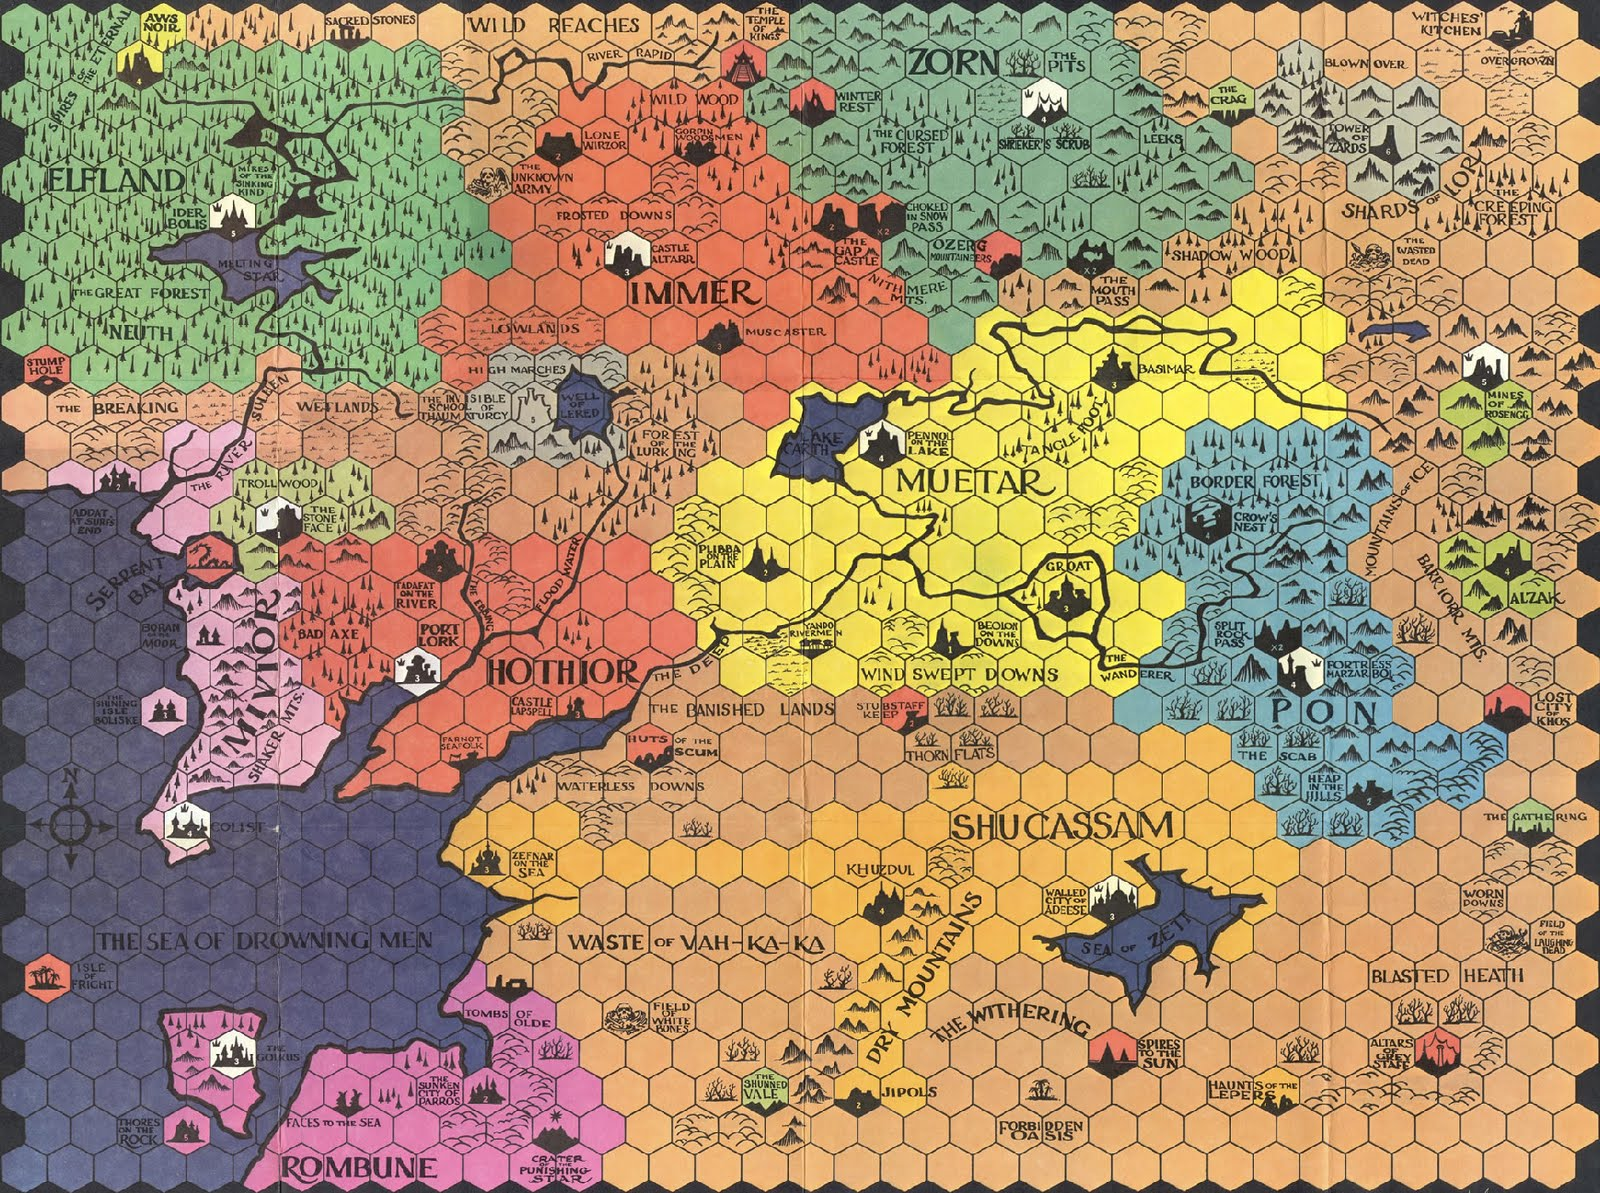 Minaria, as far as I'm concerned the best hexmap every made.